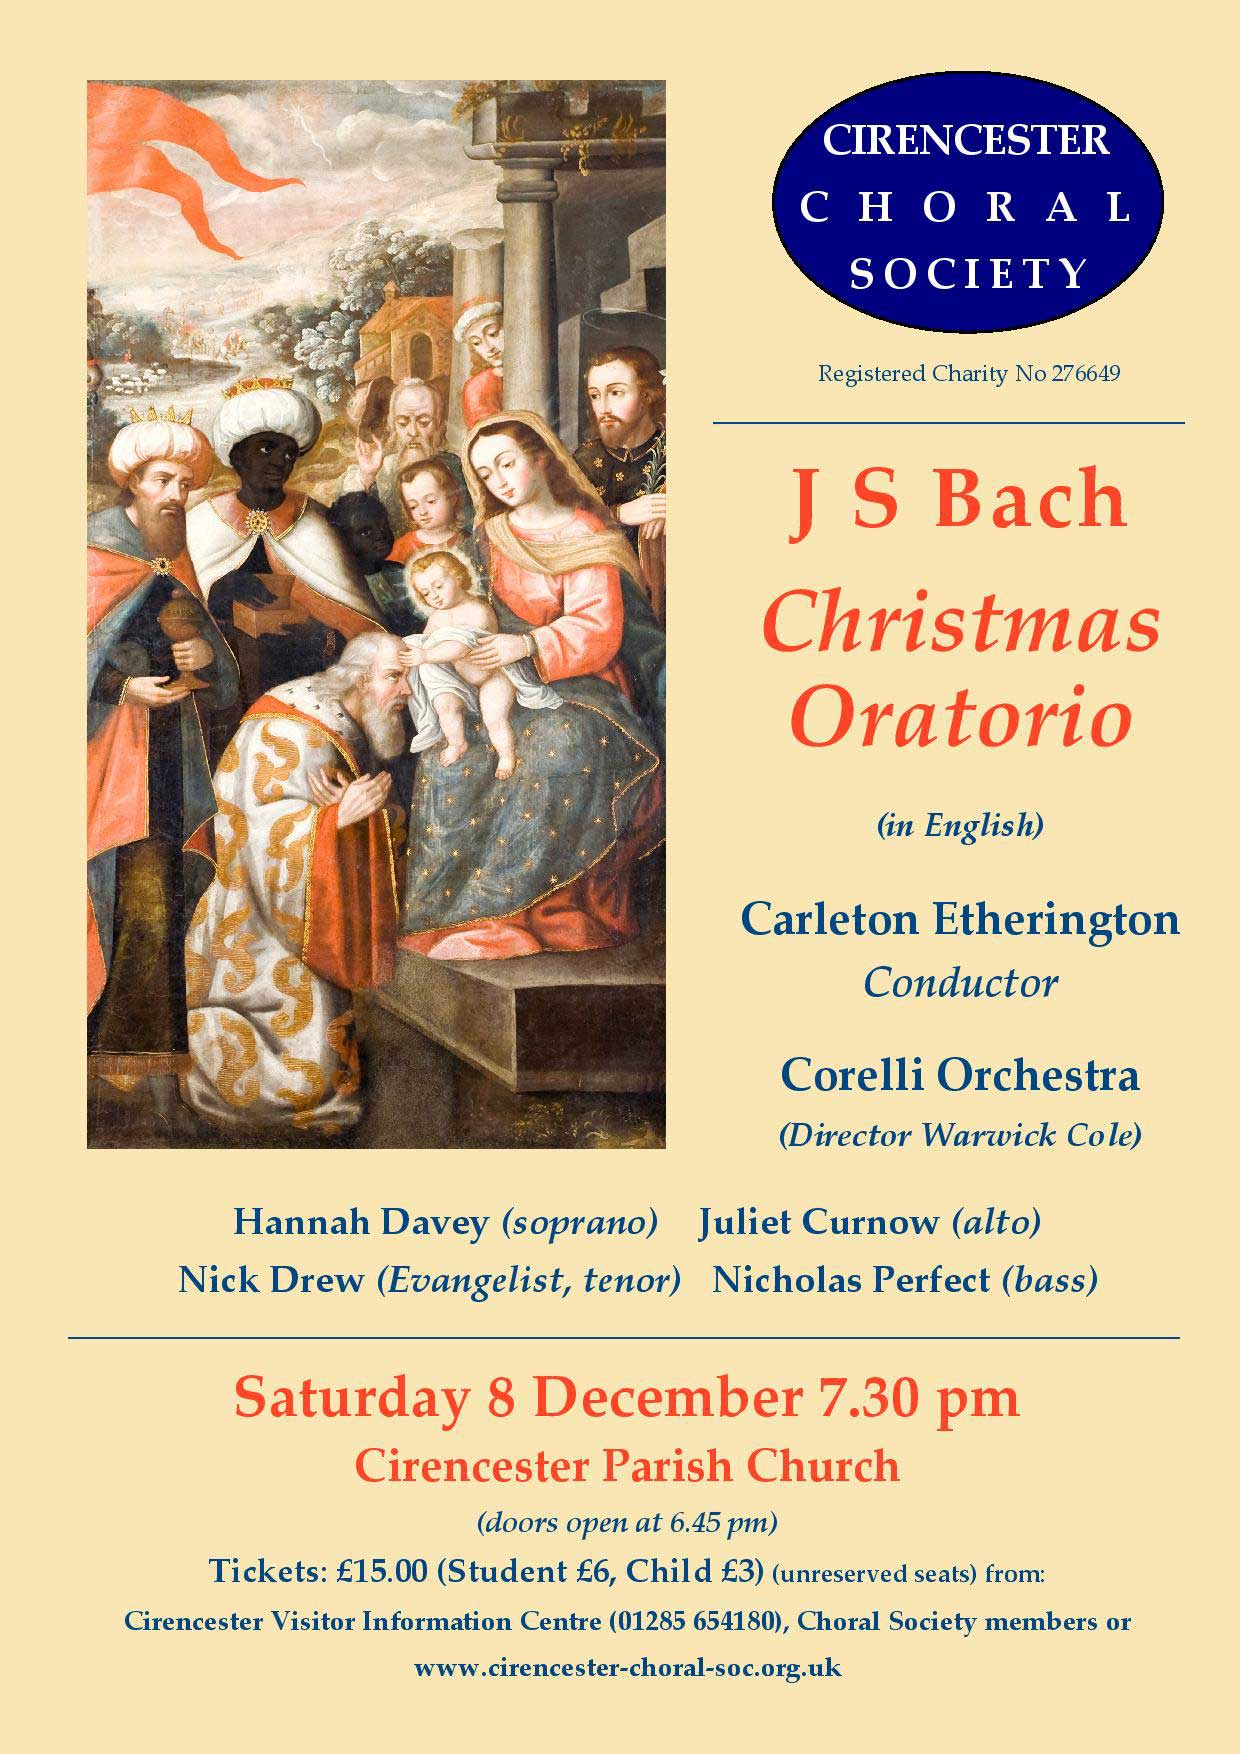 Cirencester Choral Society's Autumn Concert